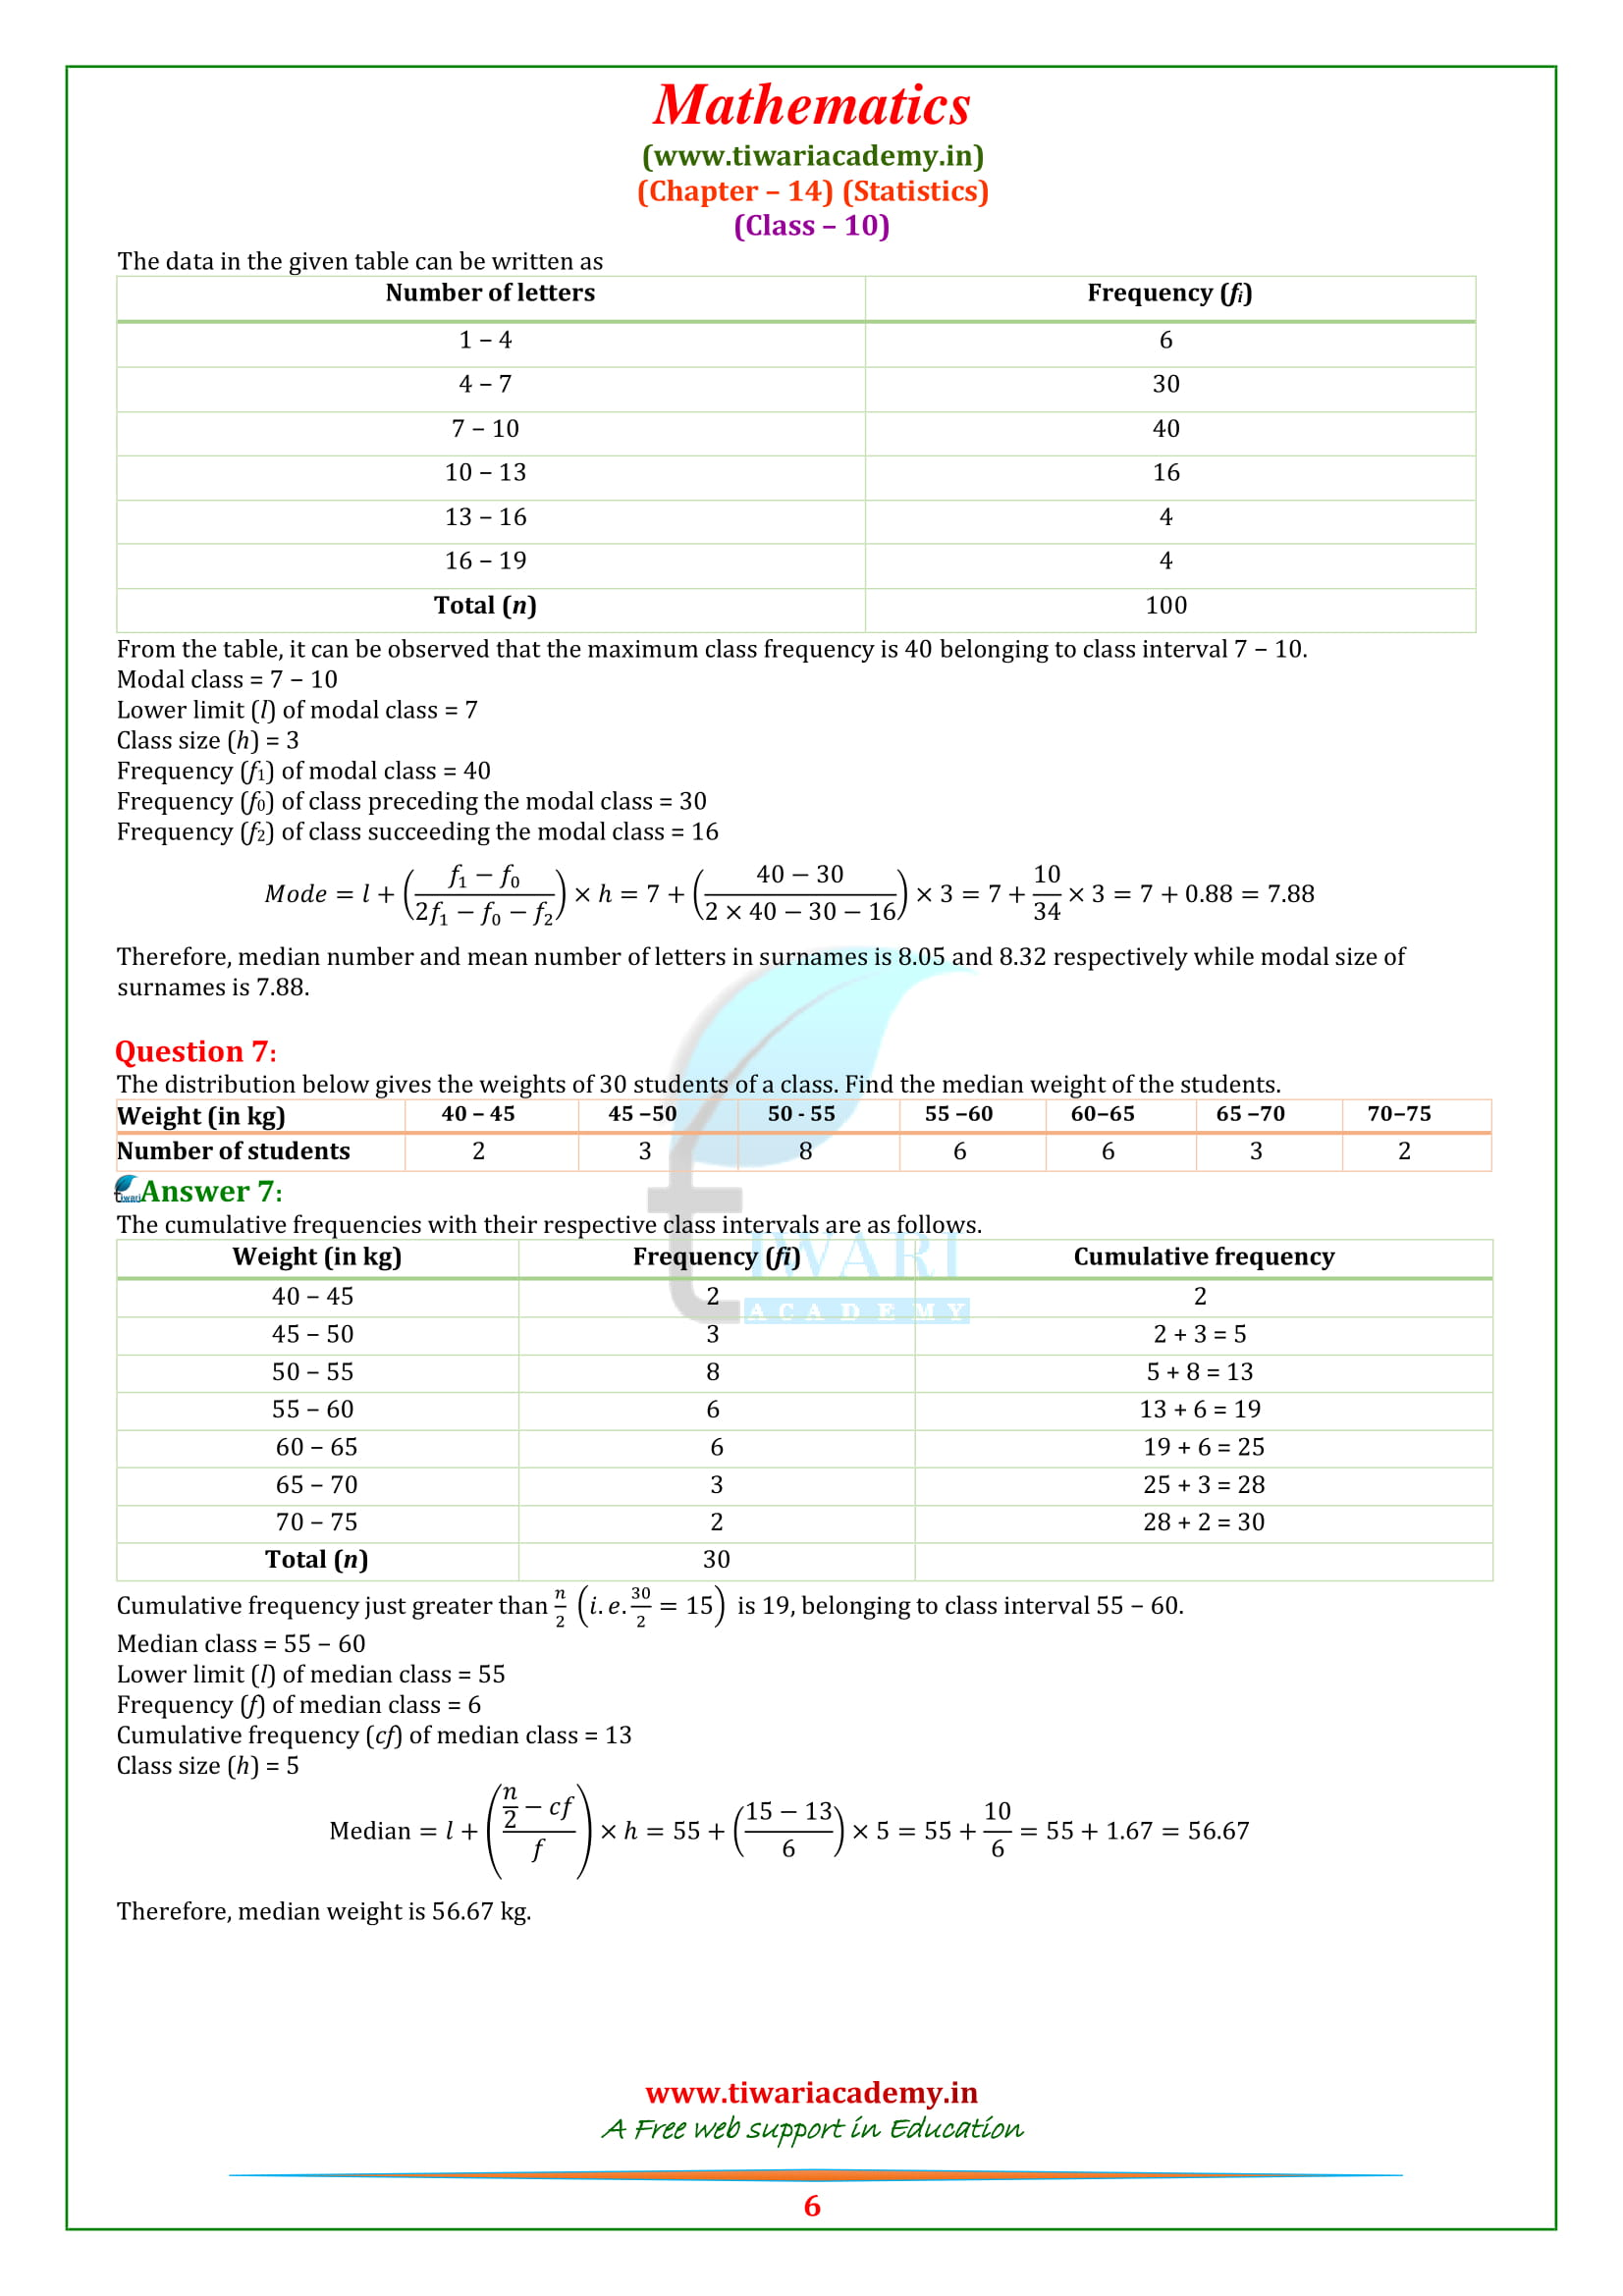 NCERT Solutions for Class 10 Maths Chapter 14 Exercise 14.3 statistics free to download